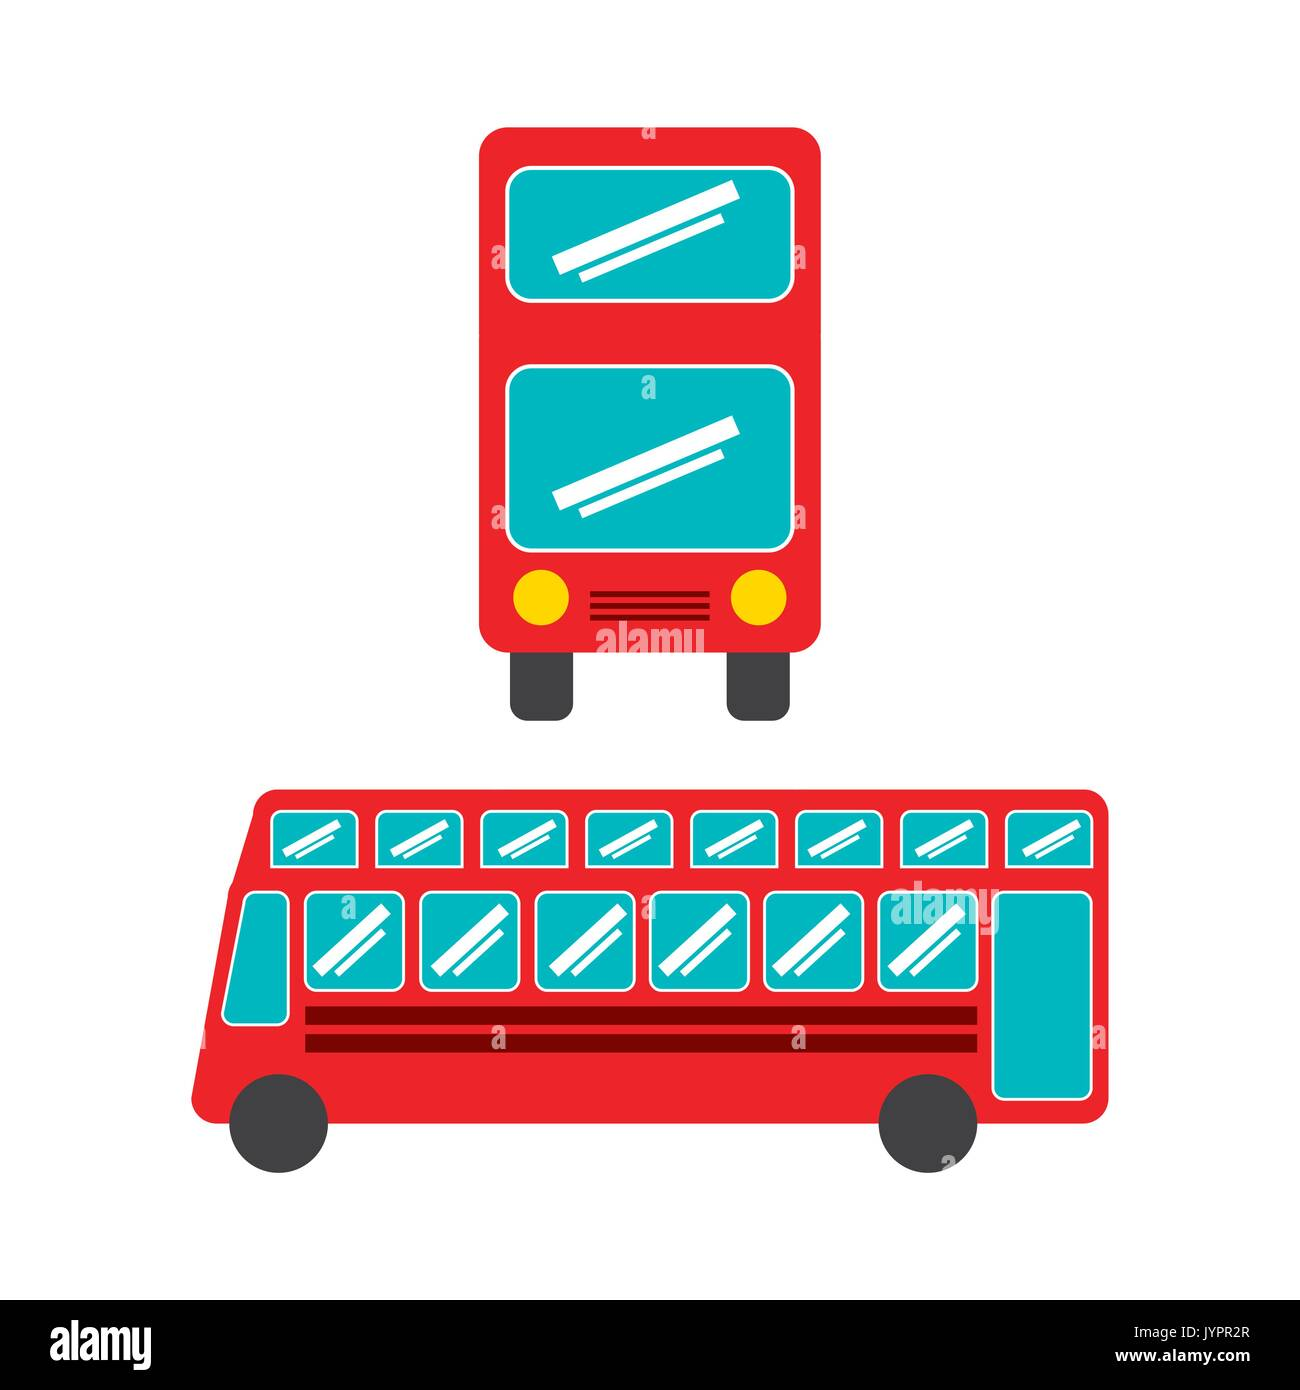 bus concept isolated design  - Stock Image